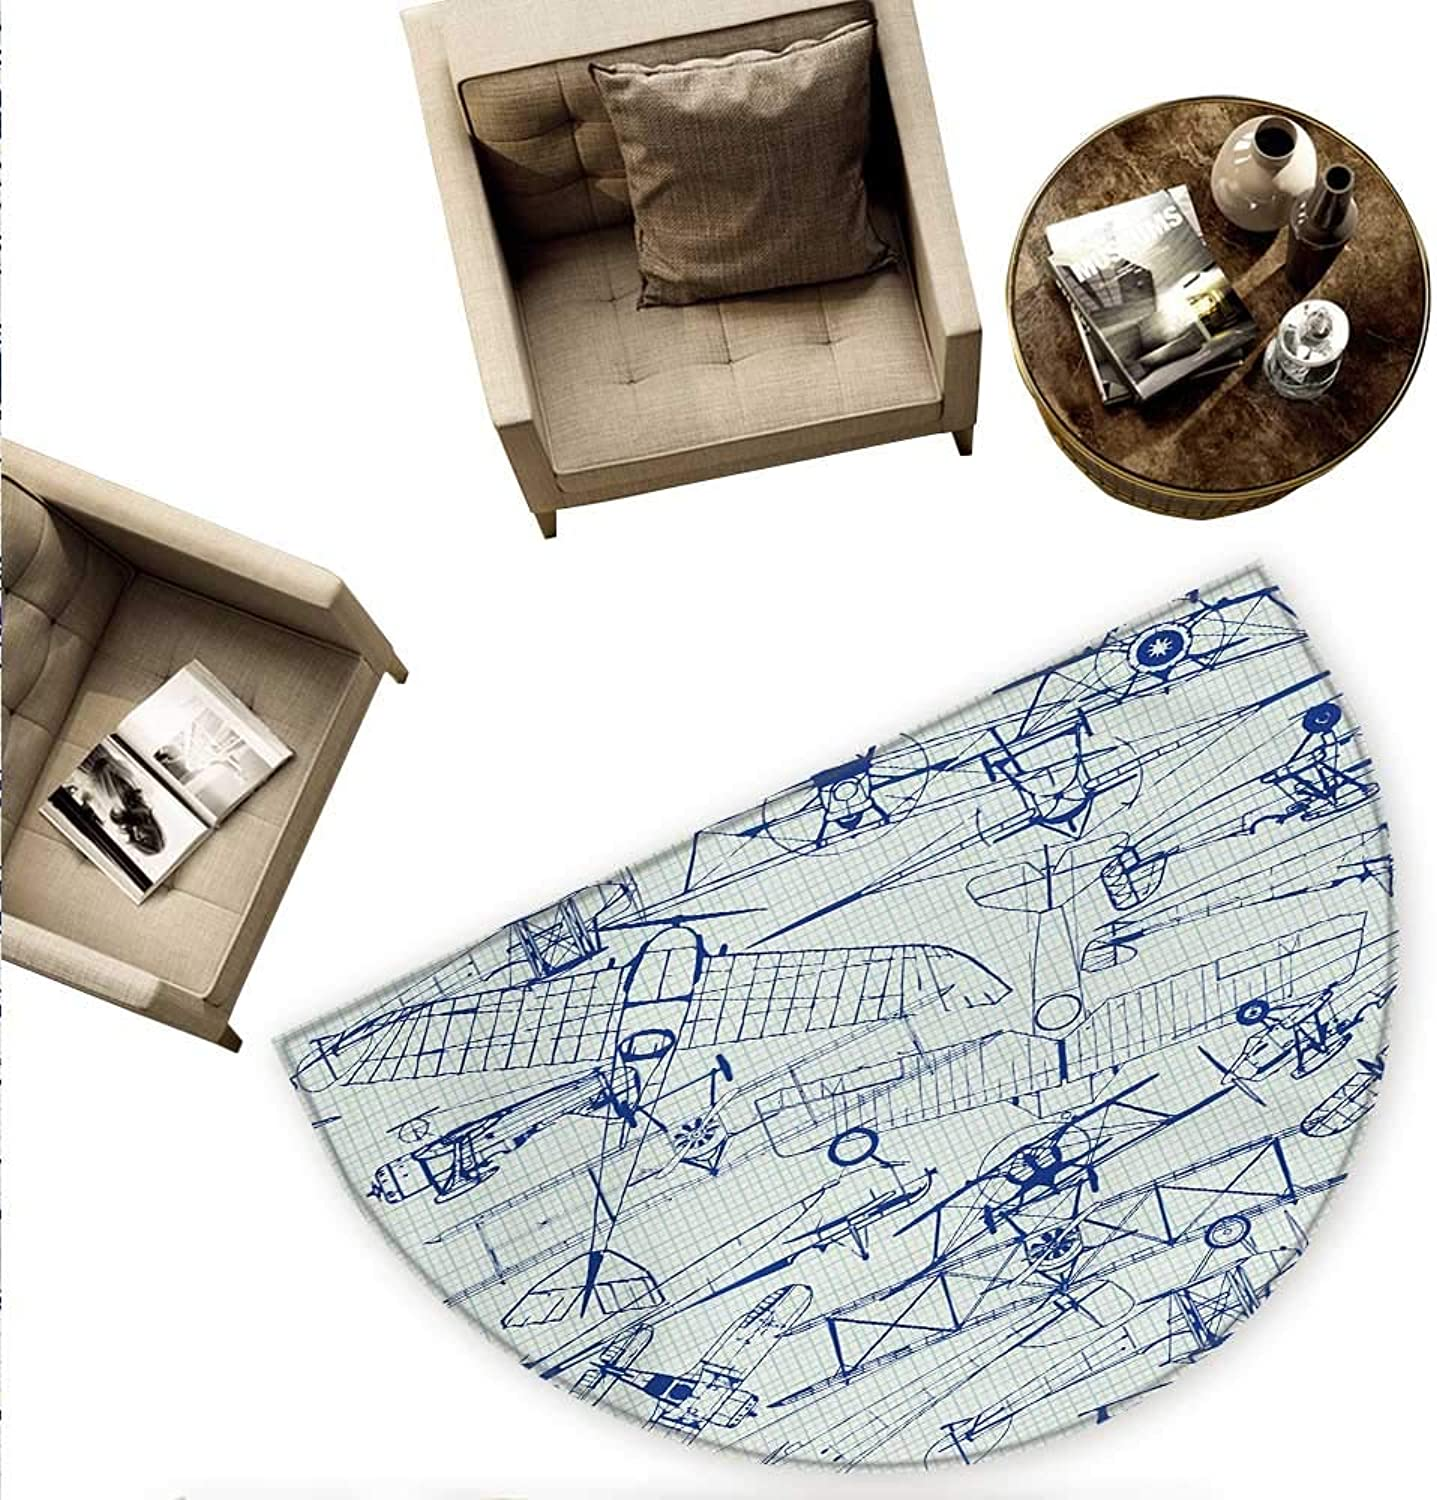 Airplane Semicircle Doormat Old Airplane Drawings Classic Dated Flight Vintage Style Nostalgic Jets Halfmoon doormats H 74.8  xD 112.2  purple bluee Turquoise